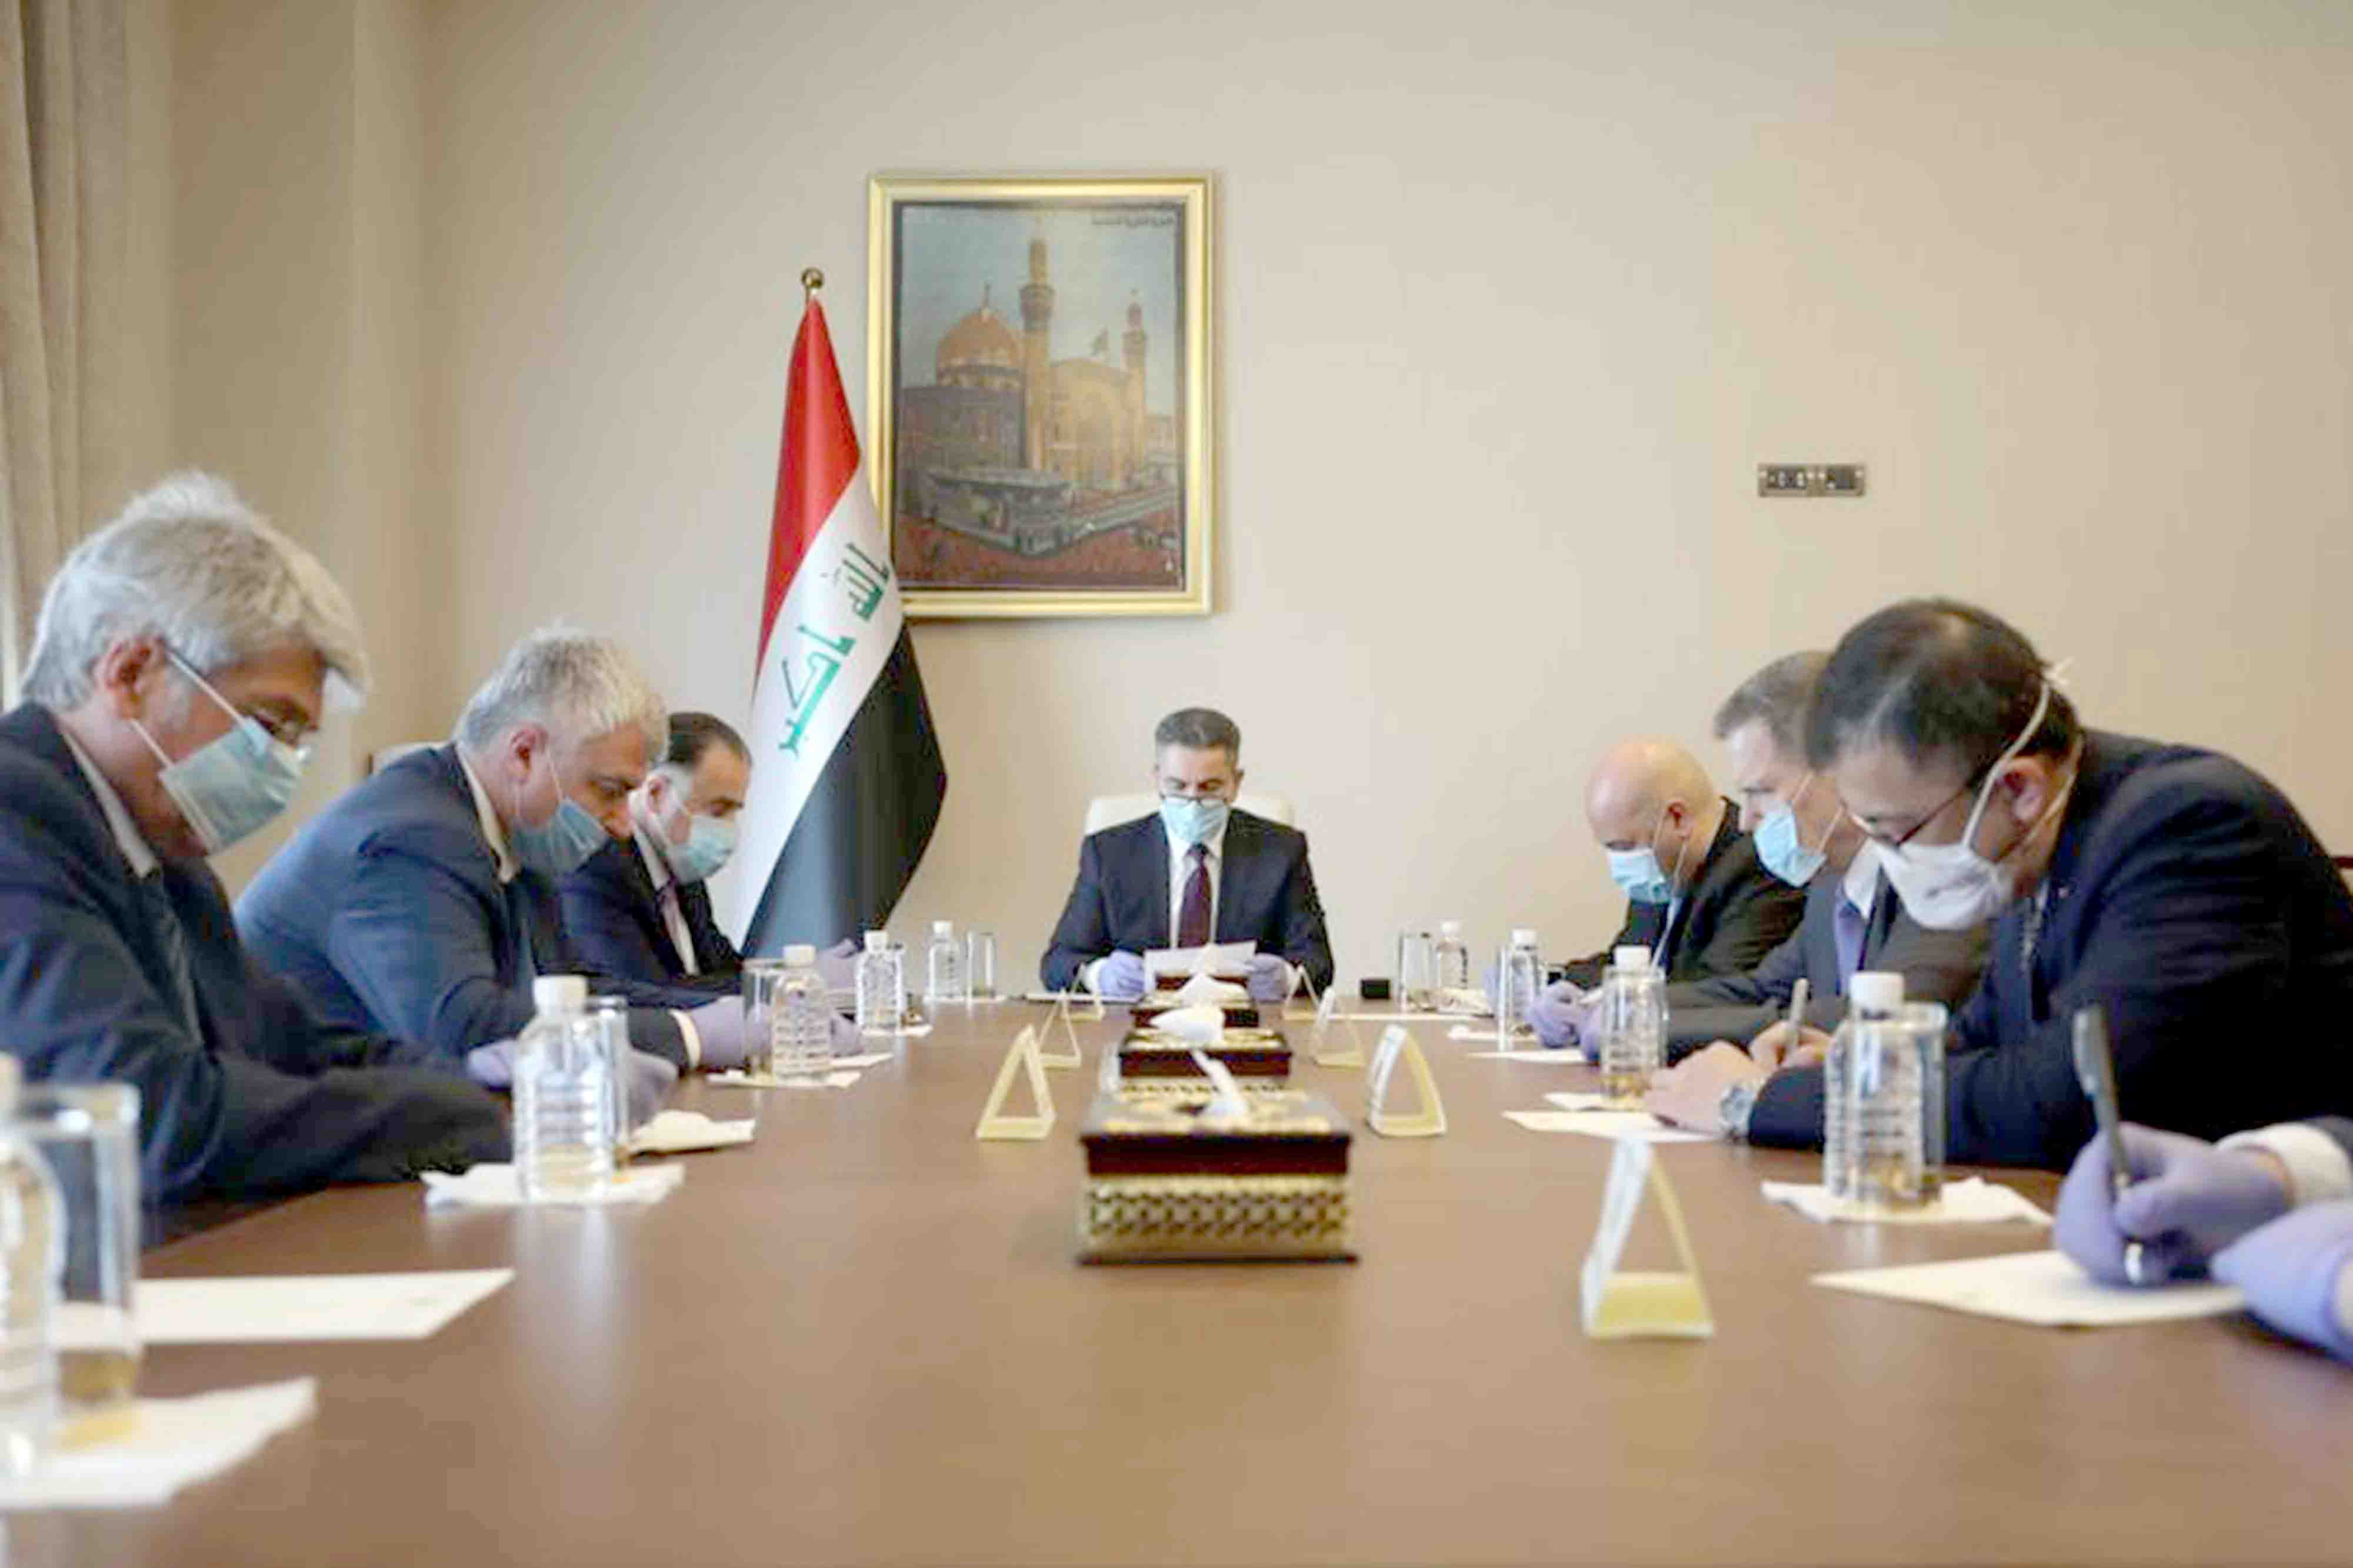 Iraqi Prime Minister-designate Adnan al-Zurfi (C) meets with the ambassadors of the P5 countries of the United Nations Security Council in Baghdad, March 25. (AFP)